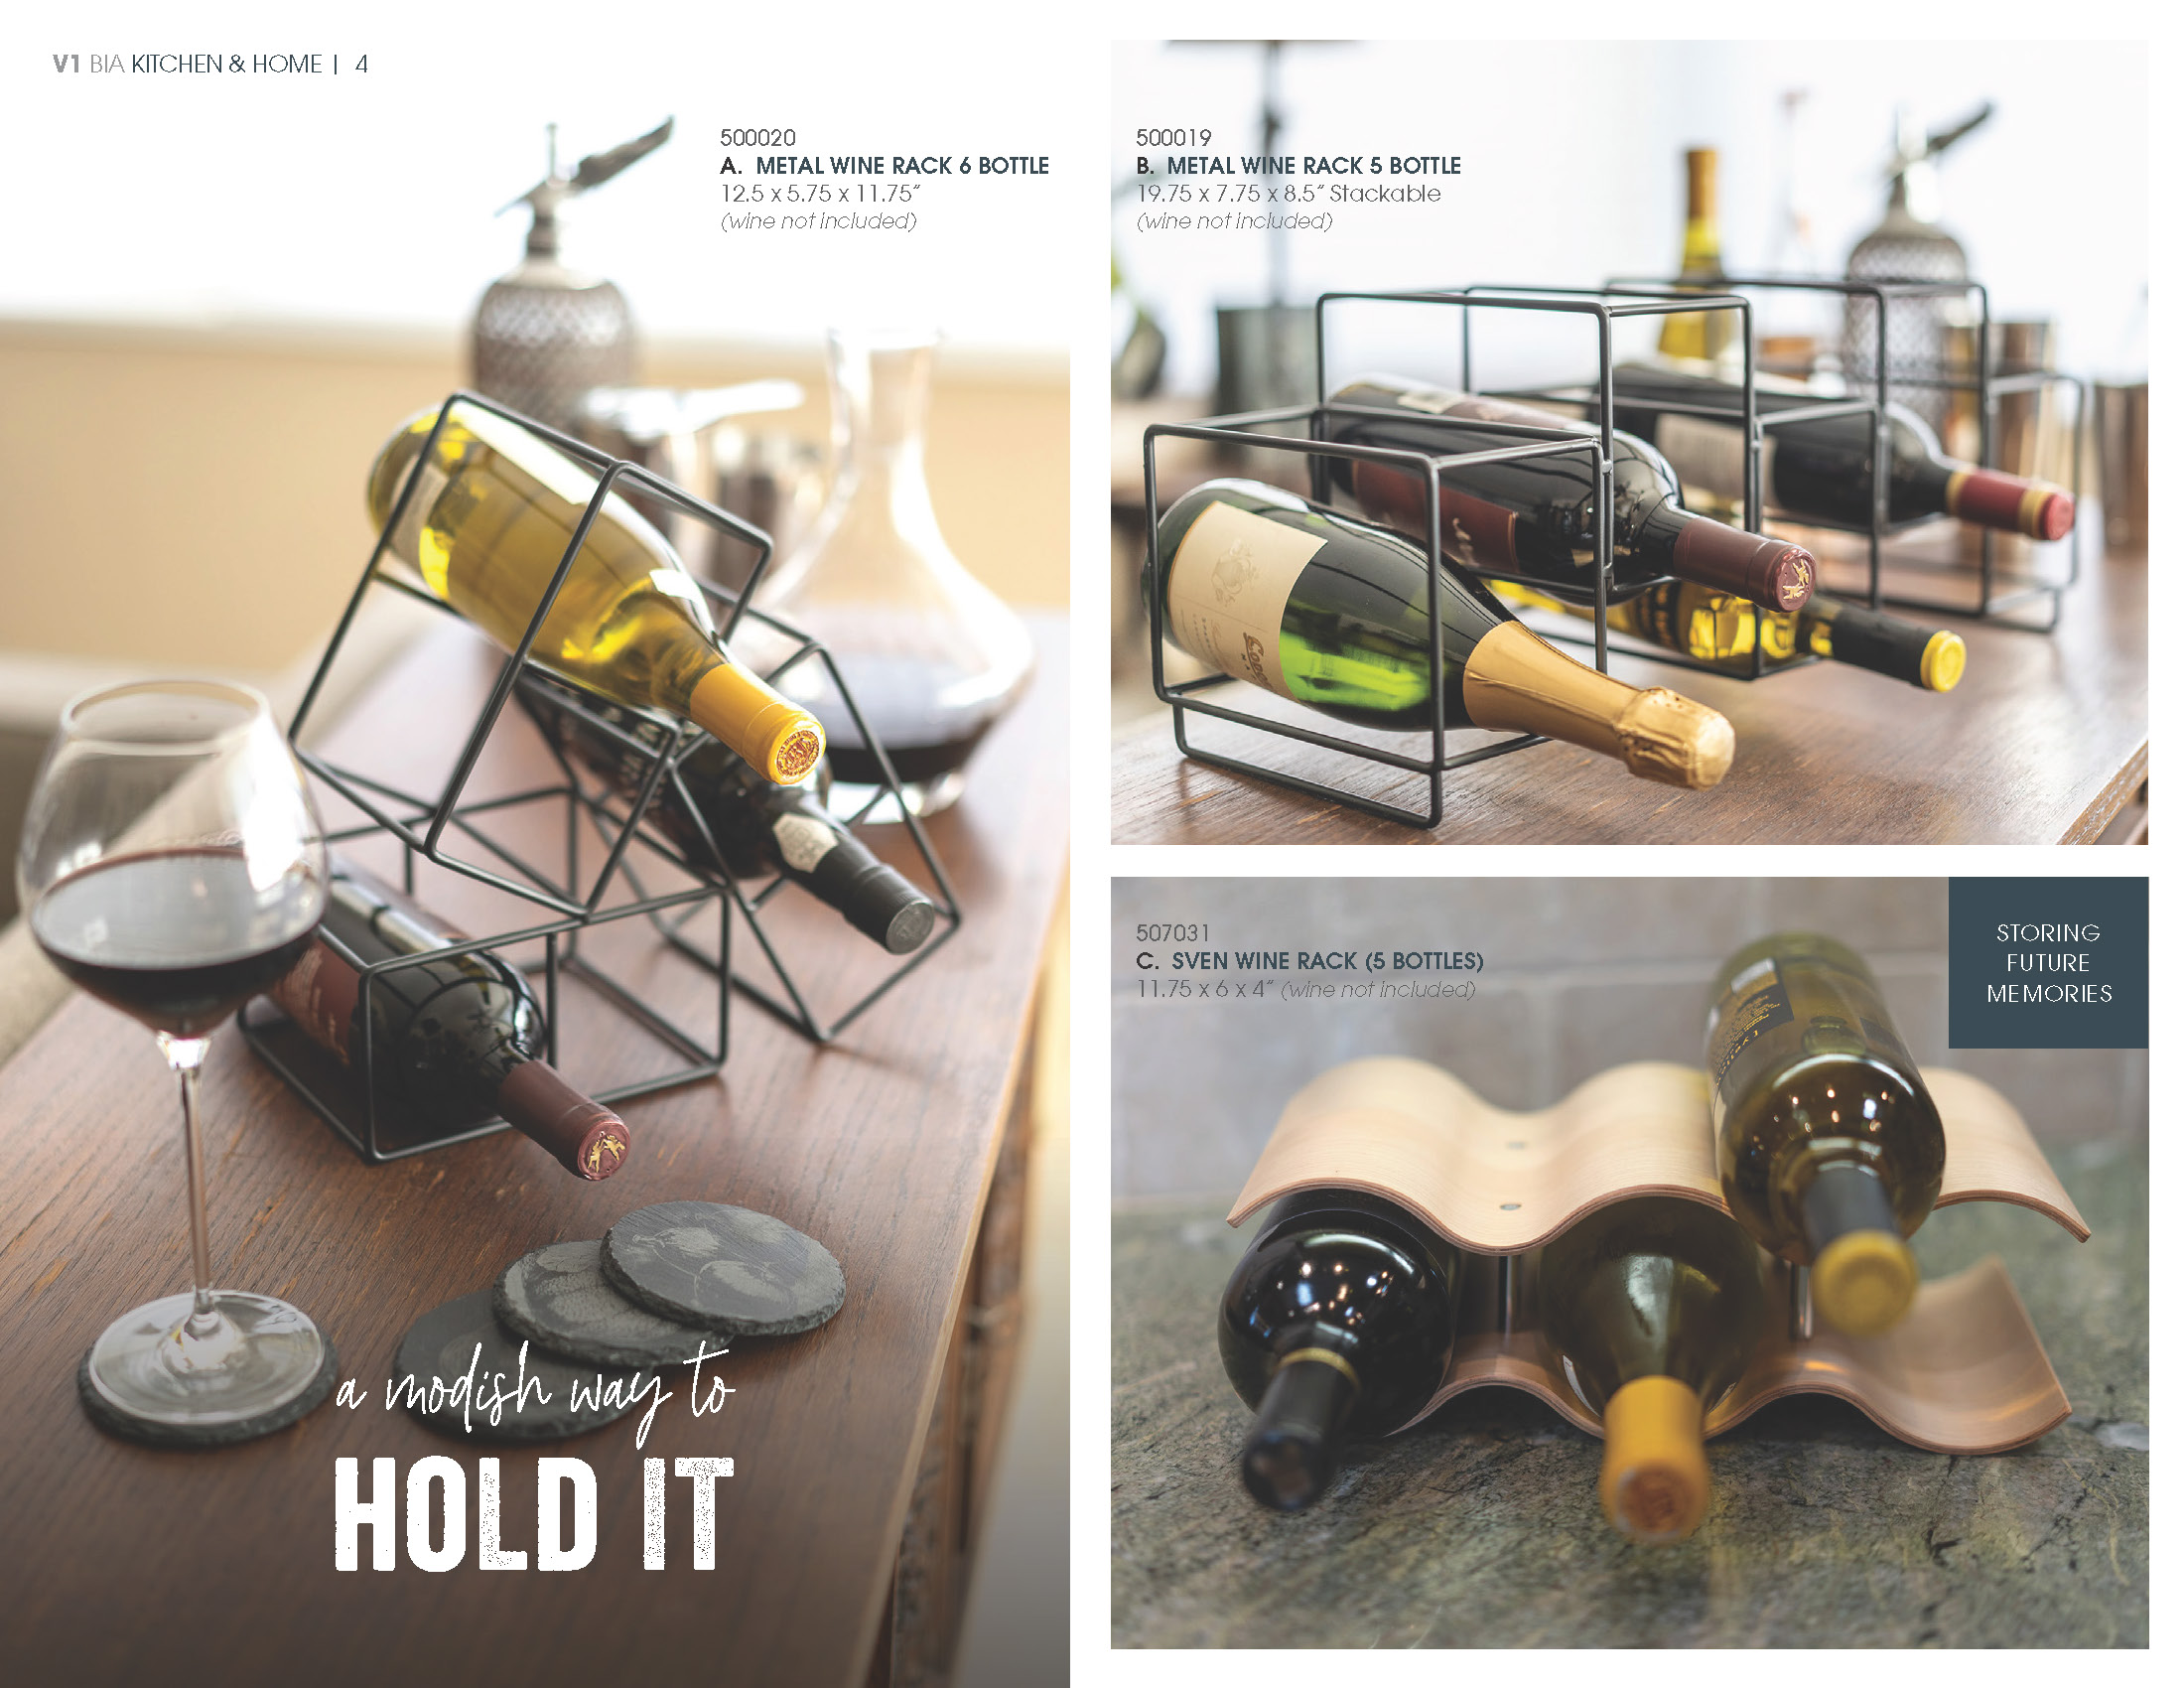 BIA Kitchen and Home Catalog January 2019_Page_05.jpg